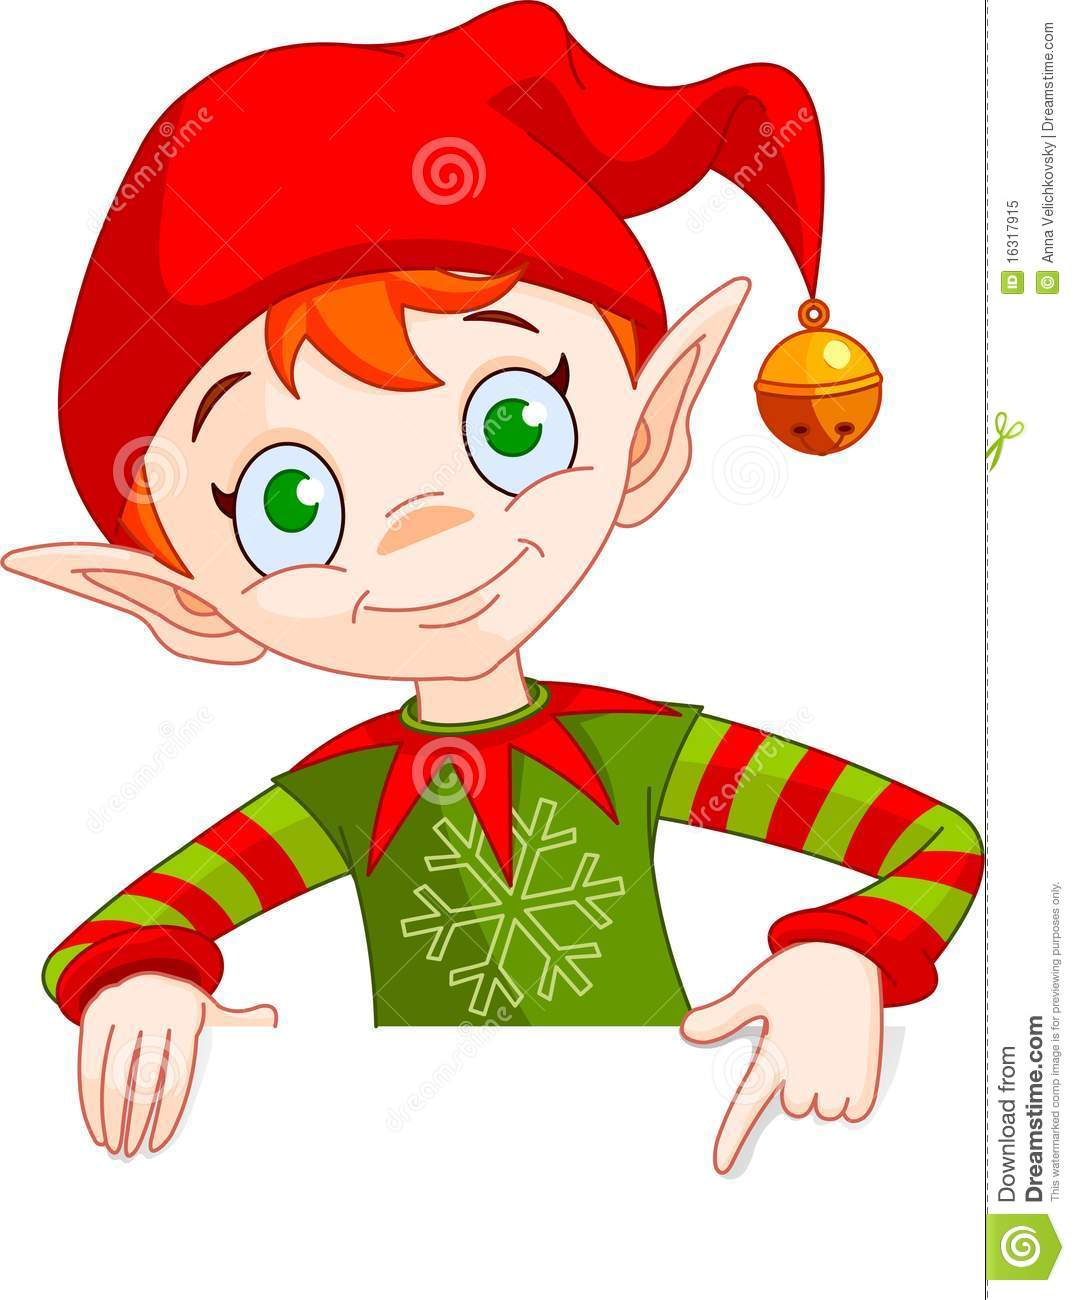 Christmas Elf Invite amp Place Card Royalty Free Stock Photo